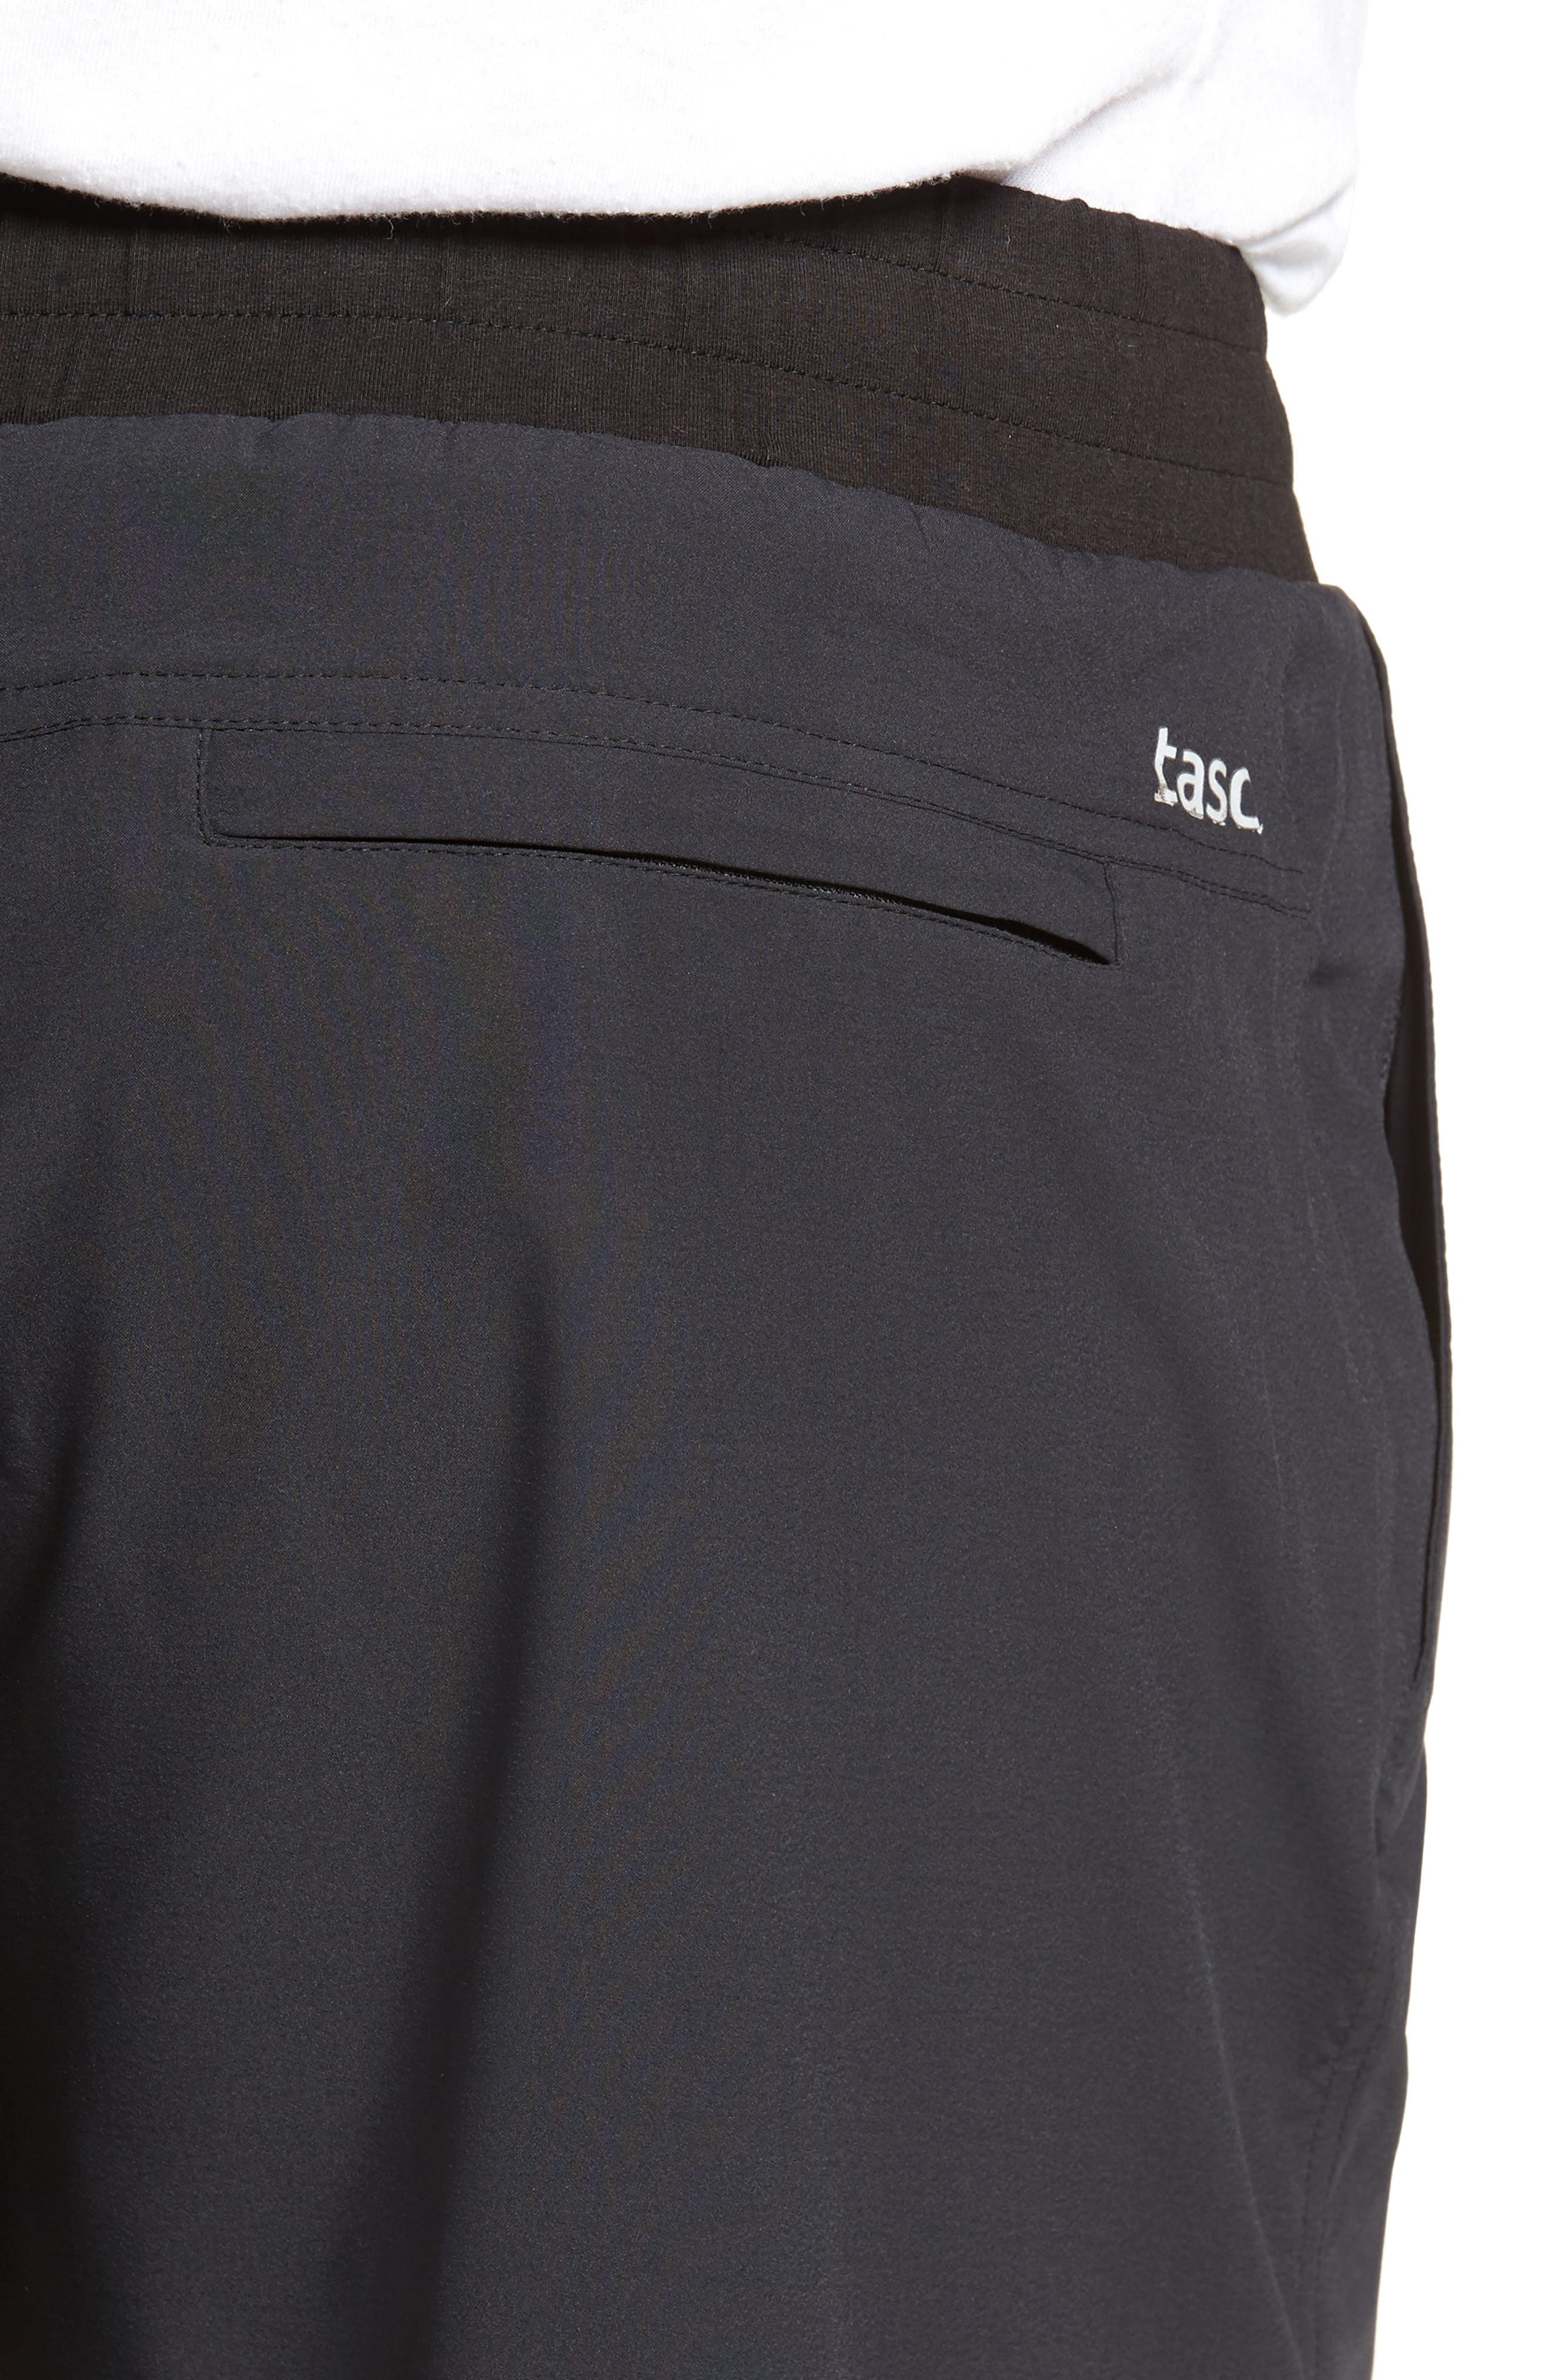 Alternate Image 4  - tasc Performance Charge Water Resistant Athletic Shorts